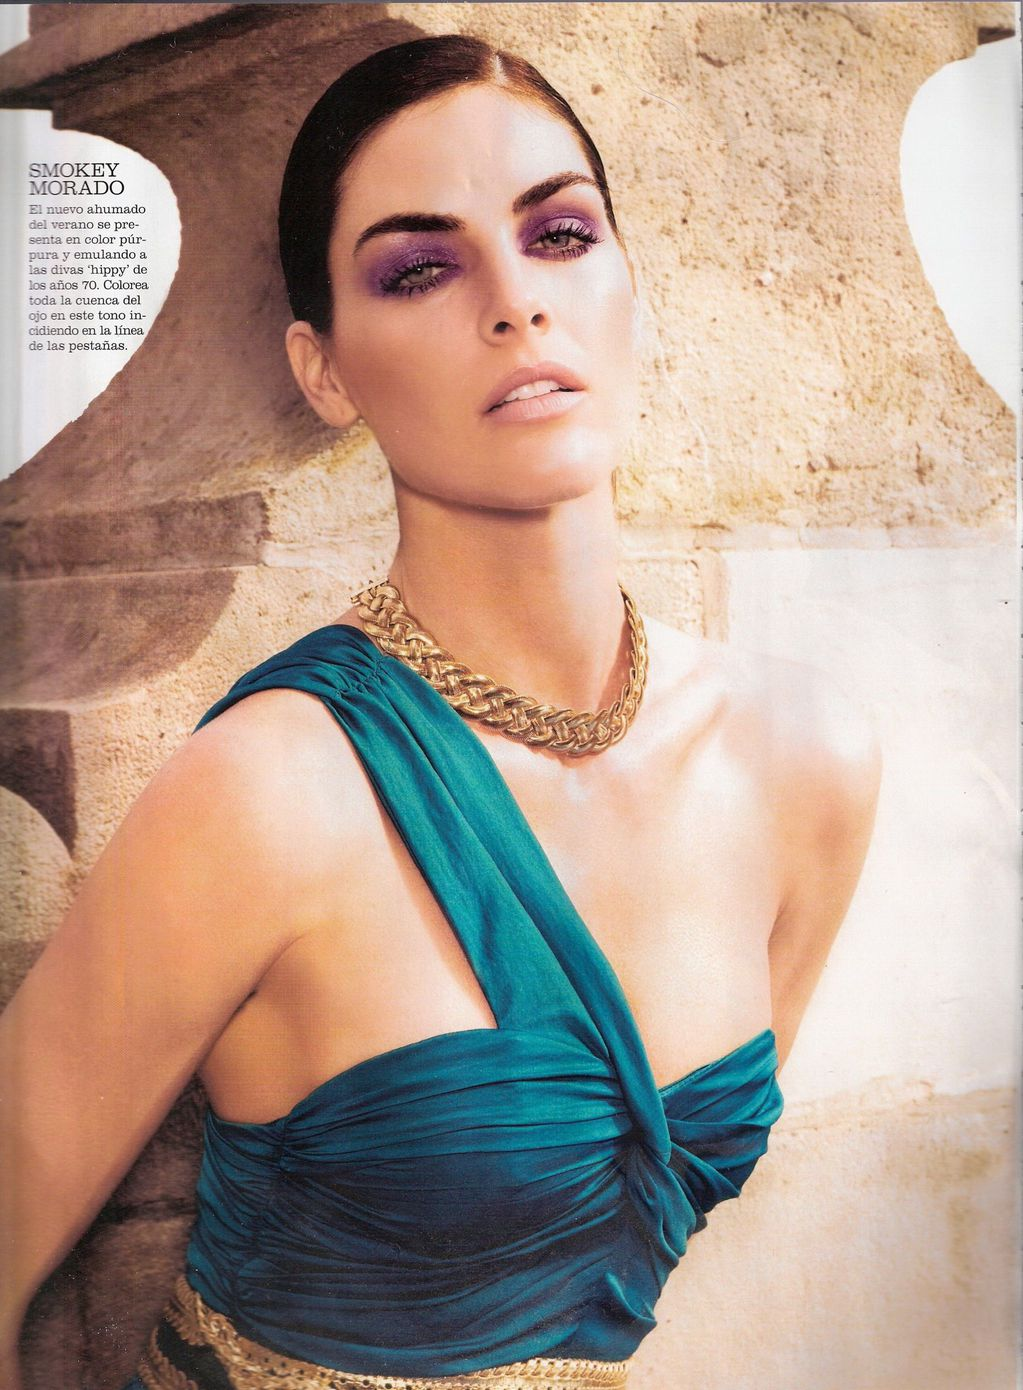 Cleavage Hilary Rhoda nudes (18 photo), Tits, Leaked, Instagram, see through 2006